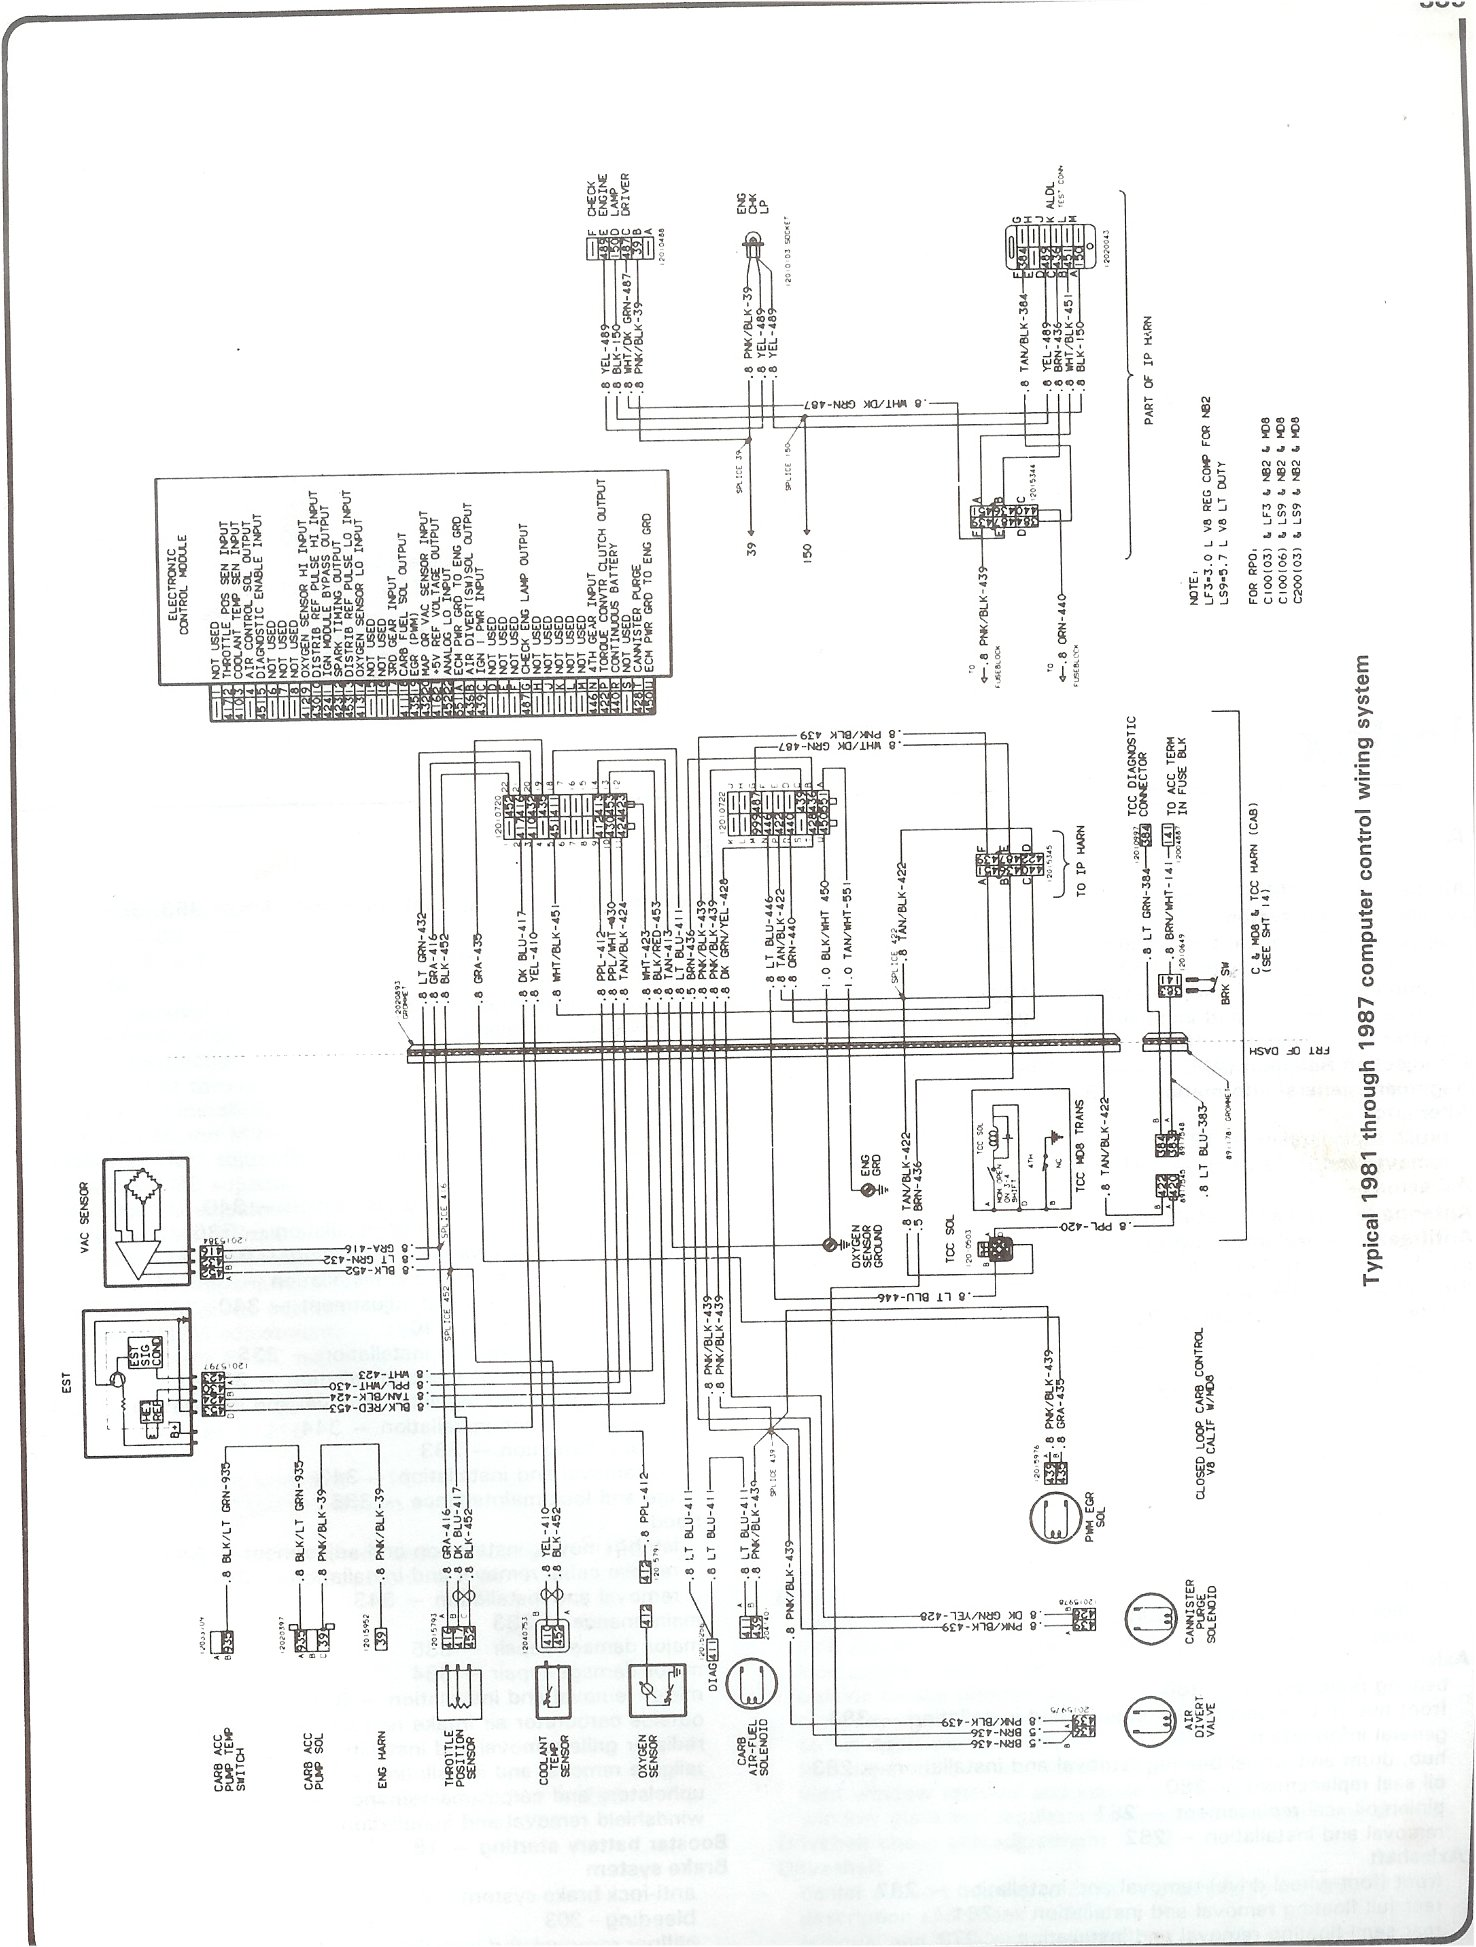 81 87_computer_control_wiring complete 73 87 wiring diagrams chevy ignition wiring diagram at n-0.co